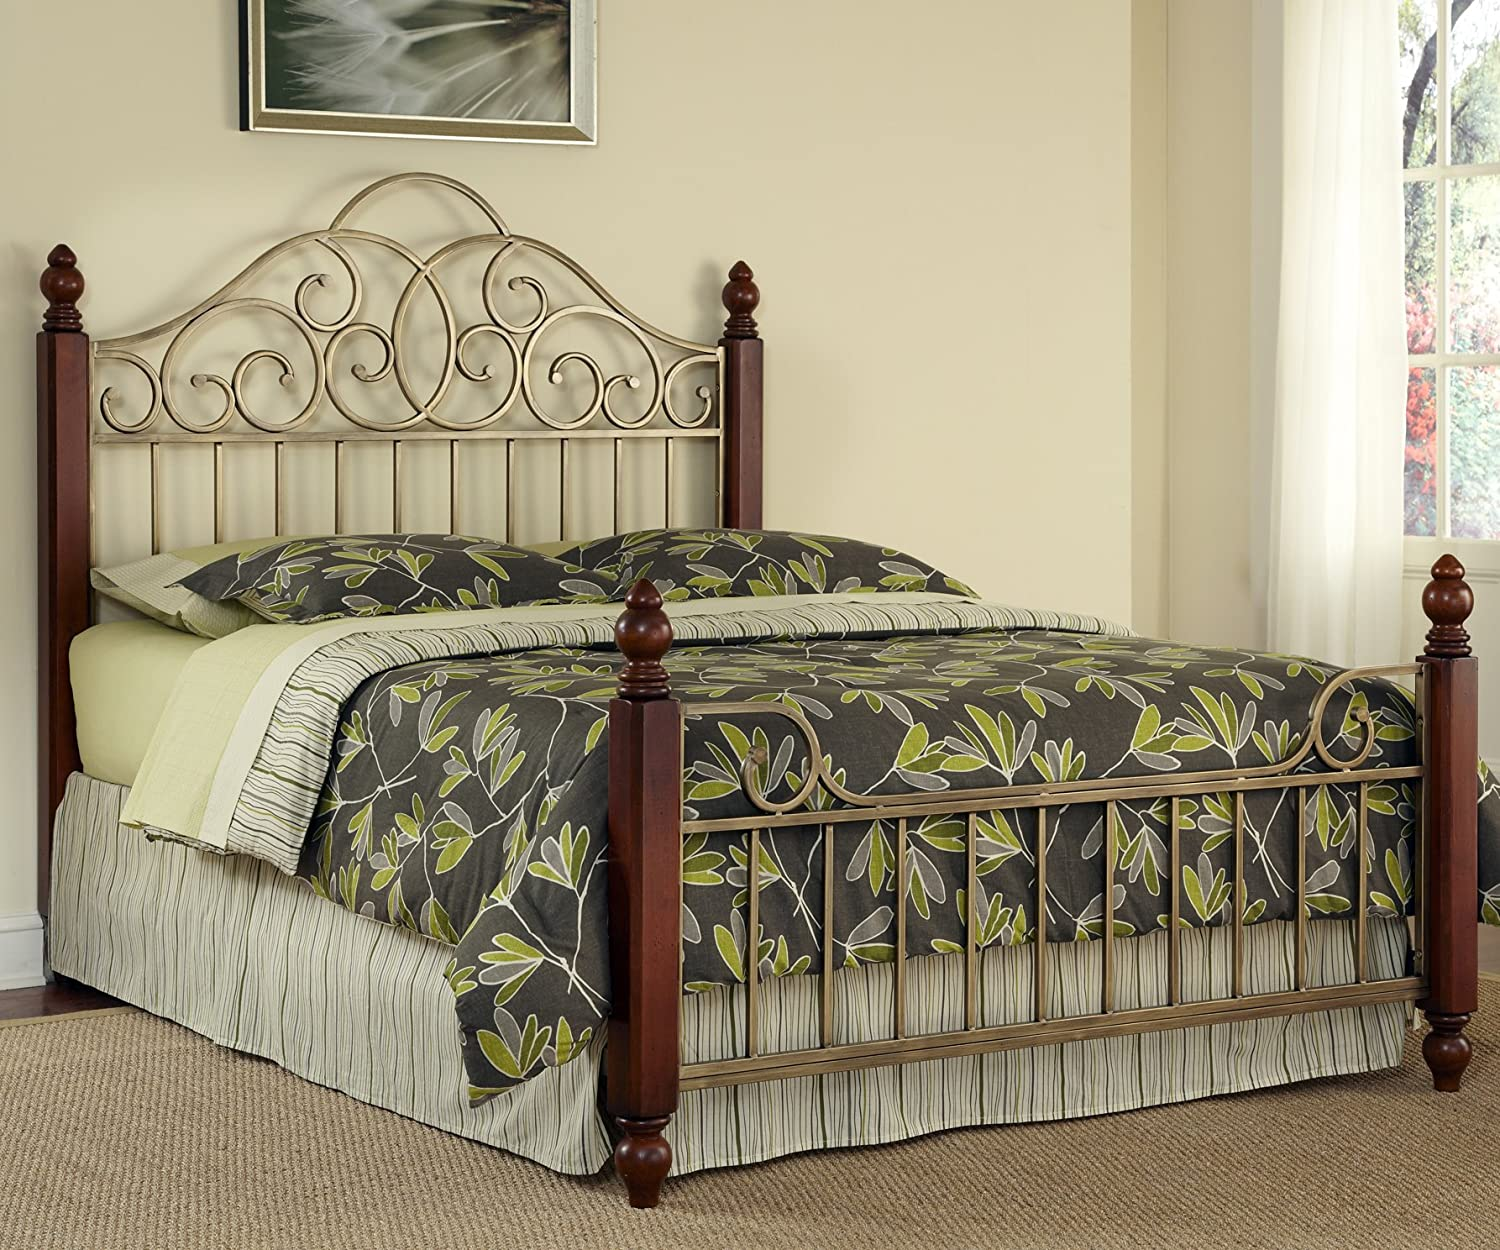 Amazon.com: Home Styles St. Ives Queen Bed: Kitchen & Dining